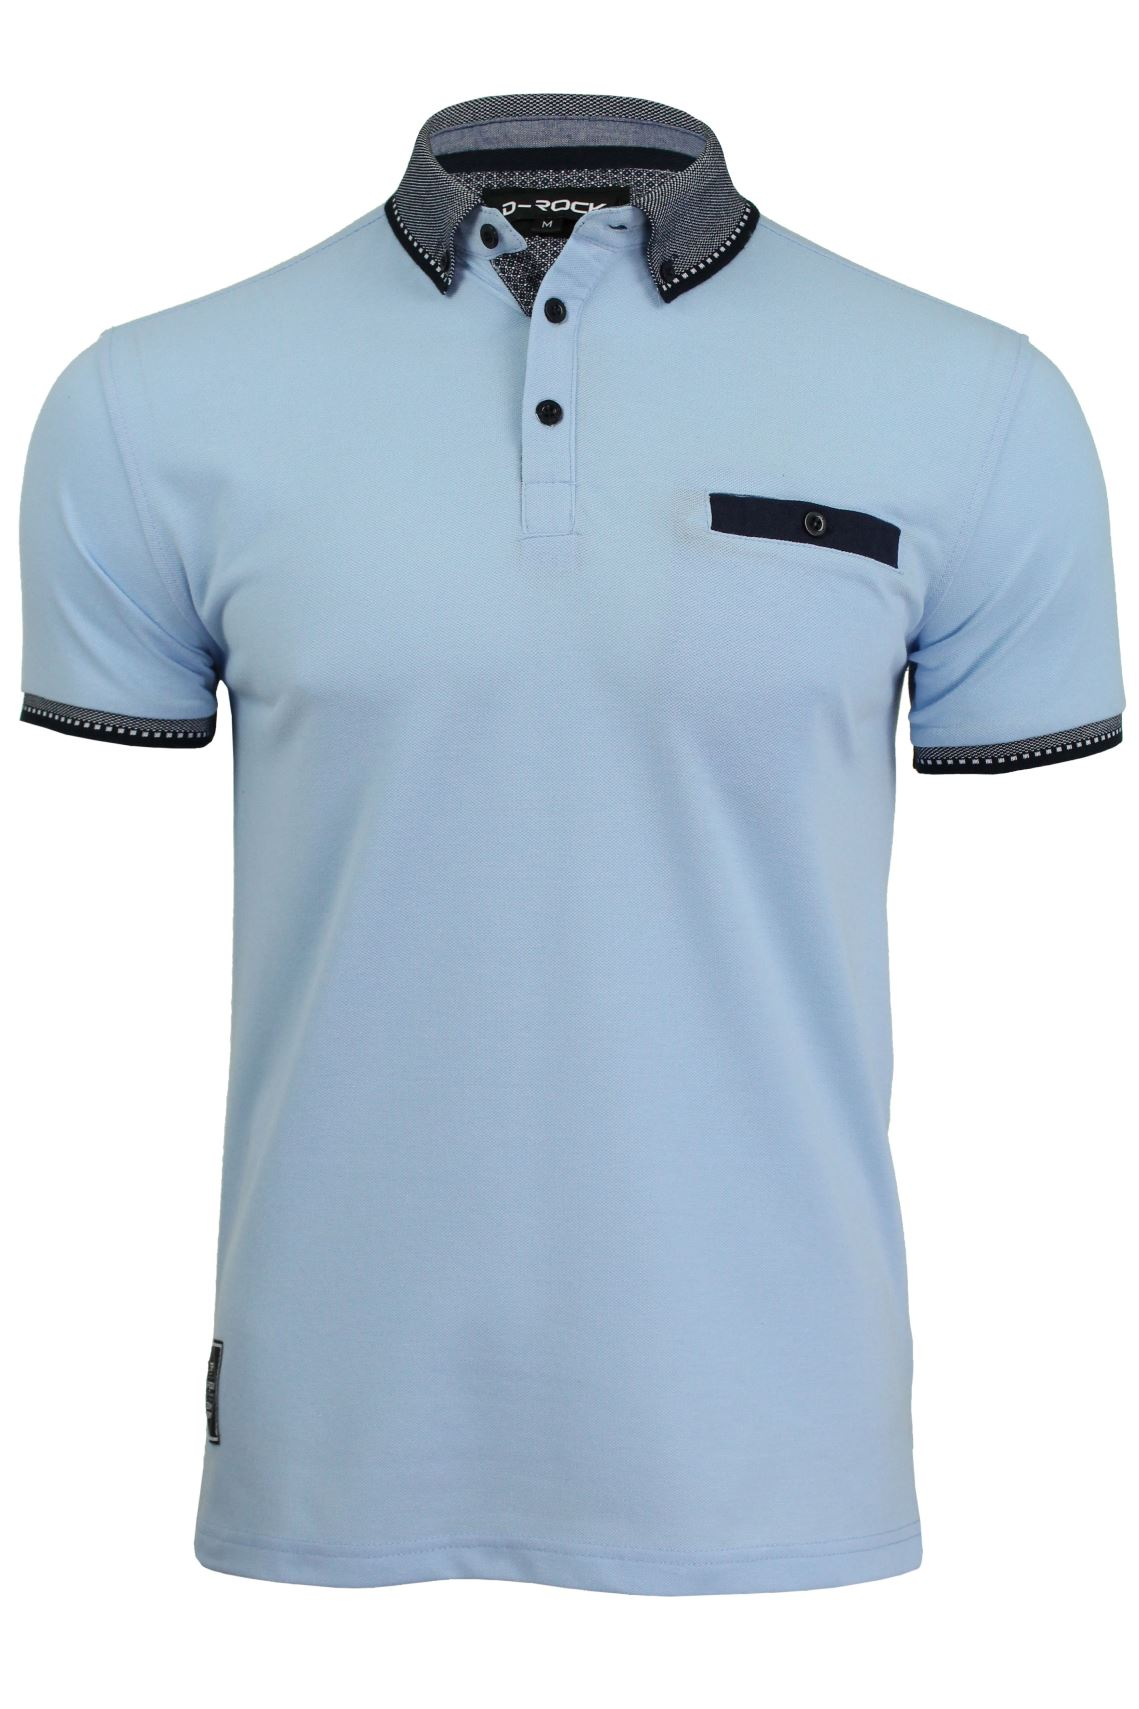 Mens polo t shirt by d rock button collar short sleeved ebay for Polo shirts without buttons